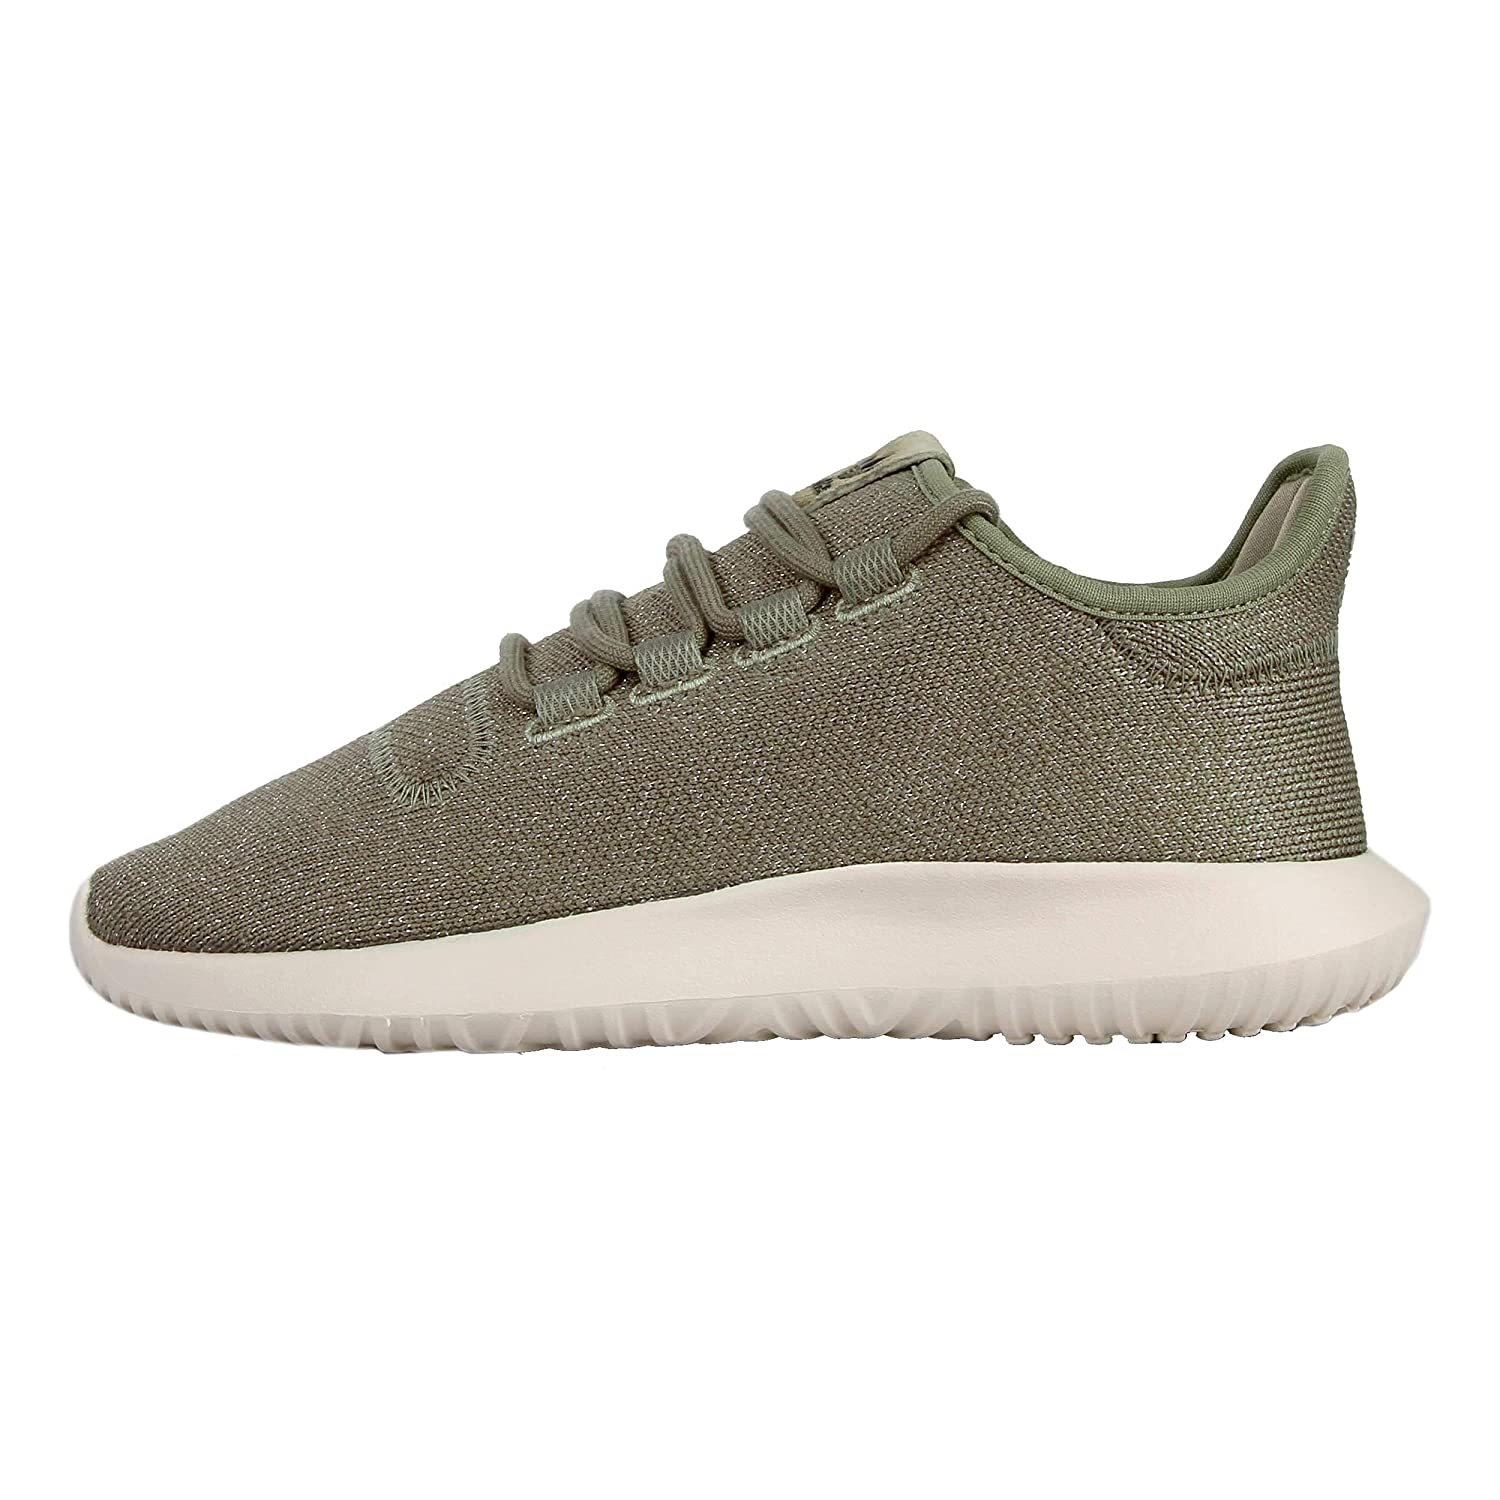 8c0751400ed1 adidas Women s s Tubular Shadow W Fitness Shoes  Amazon.co.uk  Shoes   Bags